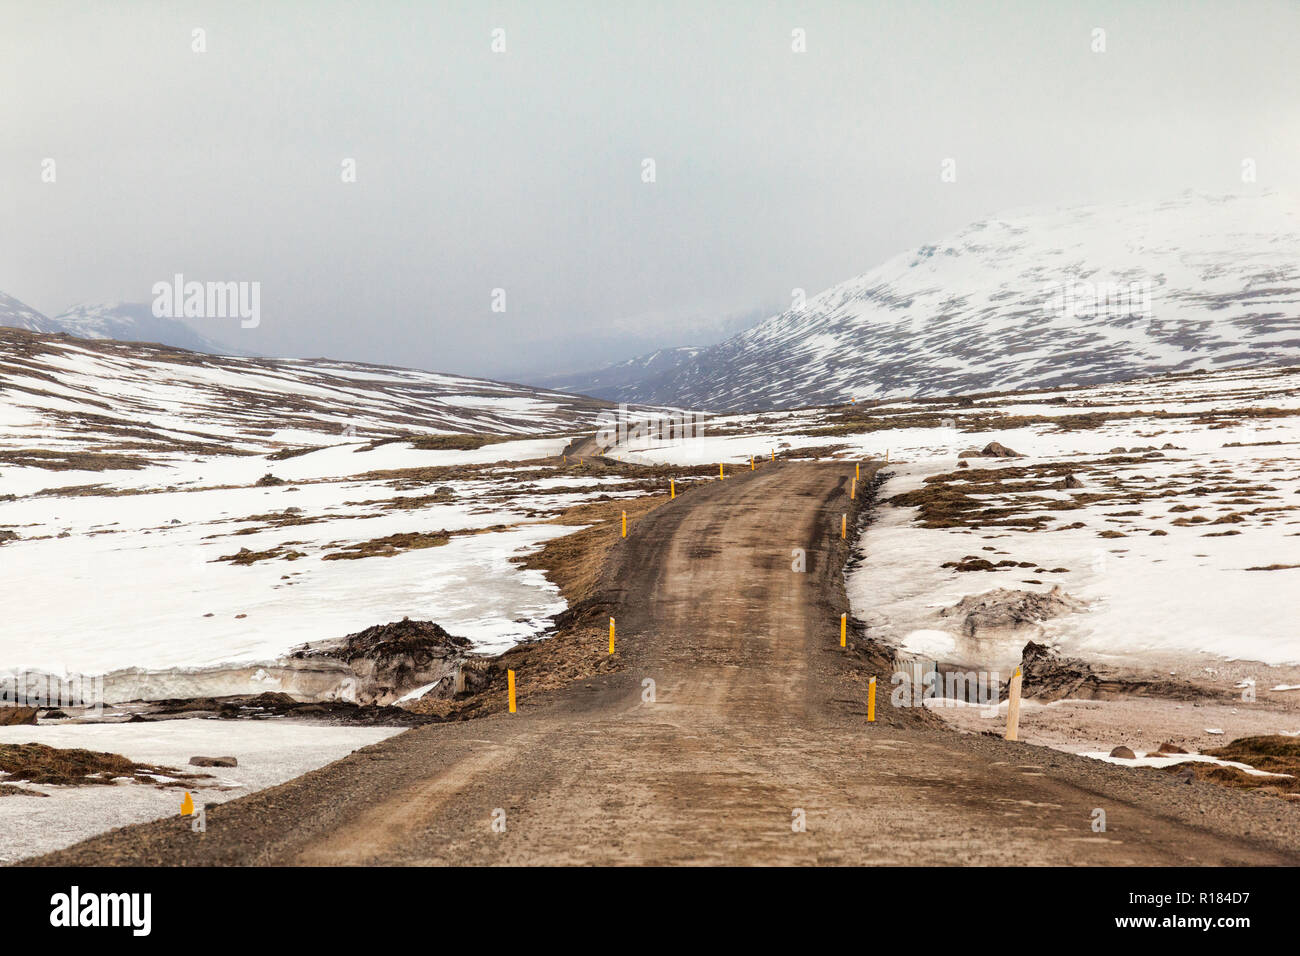 A high level mountain pass through snowy mountains in East Iceland. - Stock Image